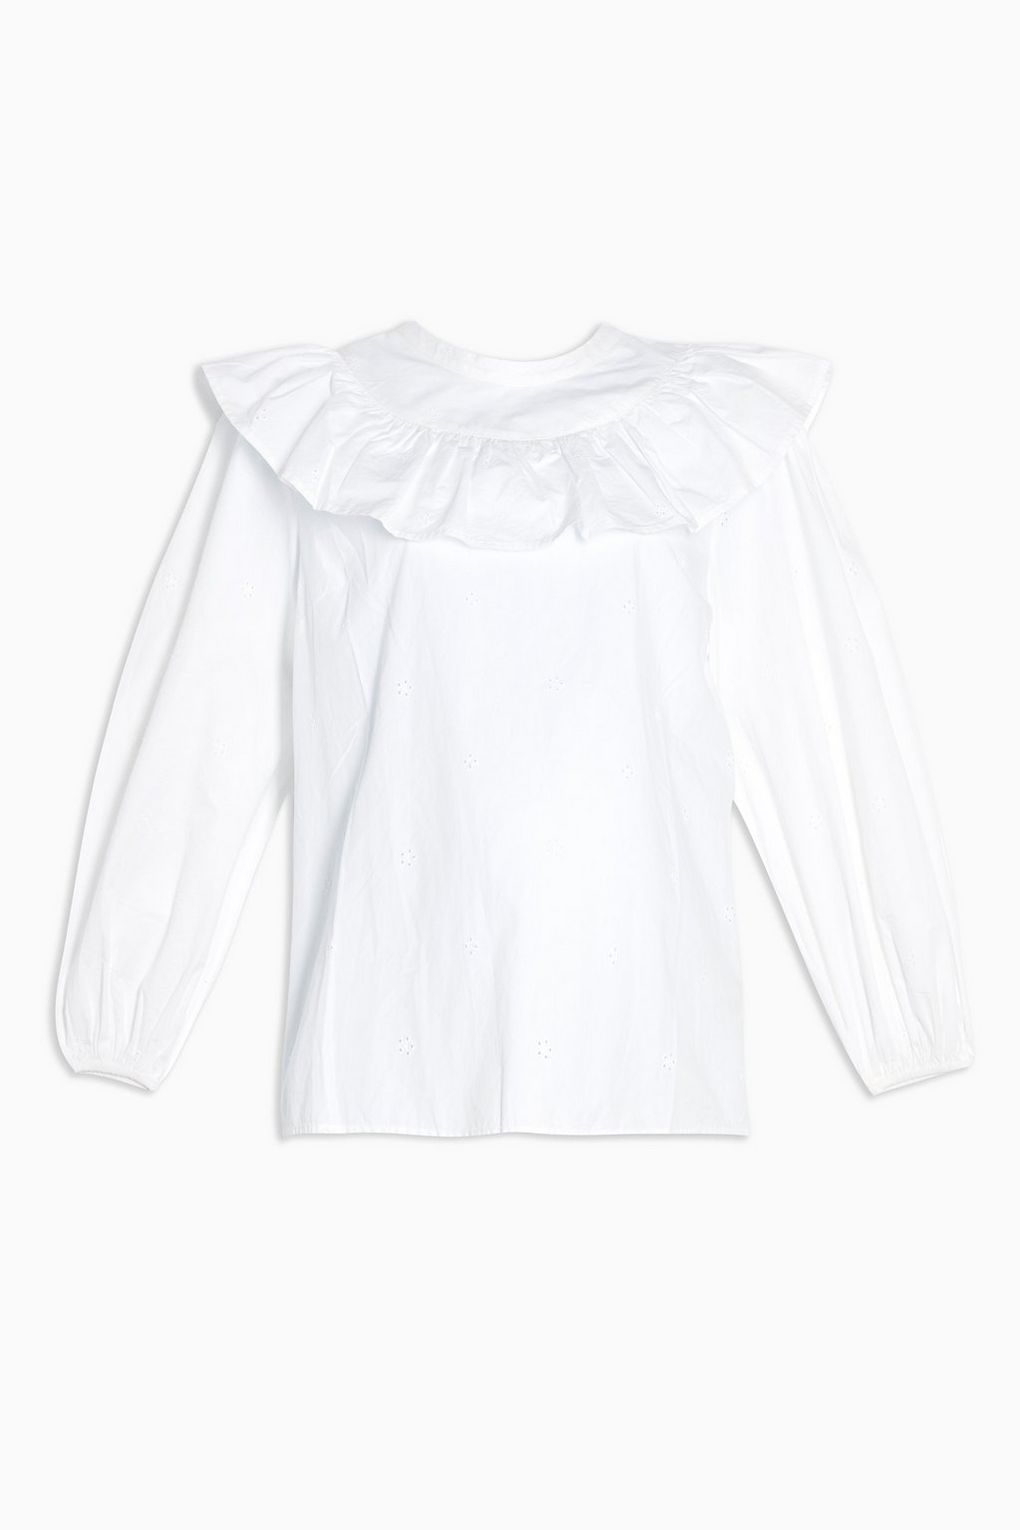 Topshop White Poplin Pintuck Blouse was £29 now £20